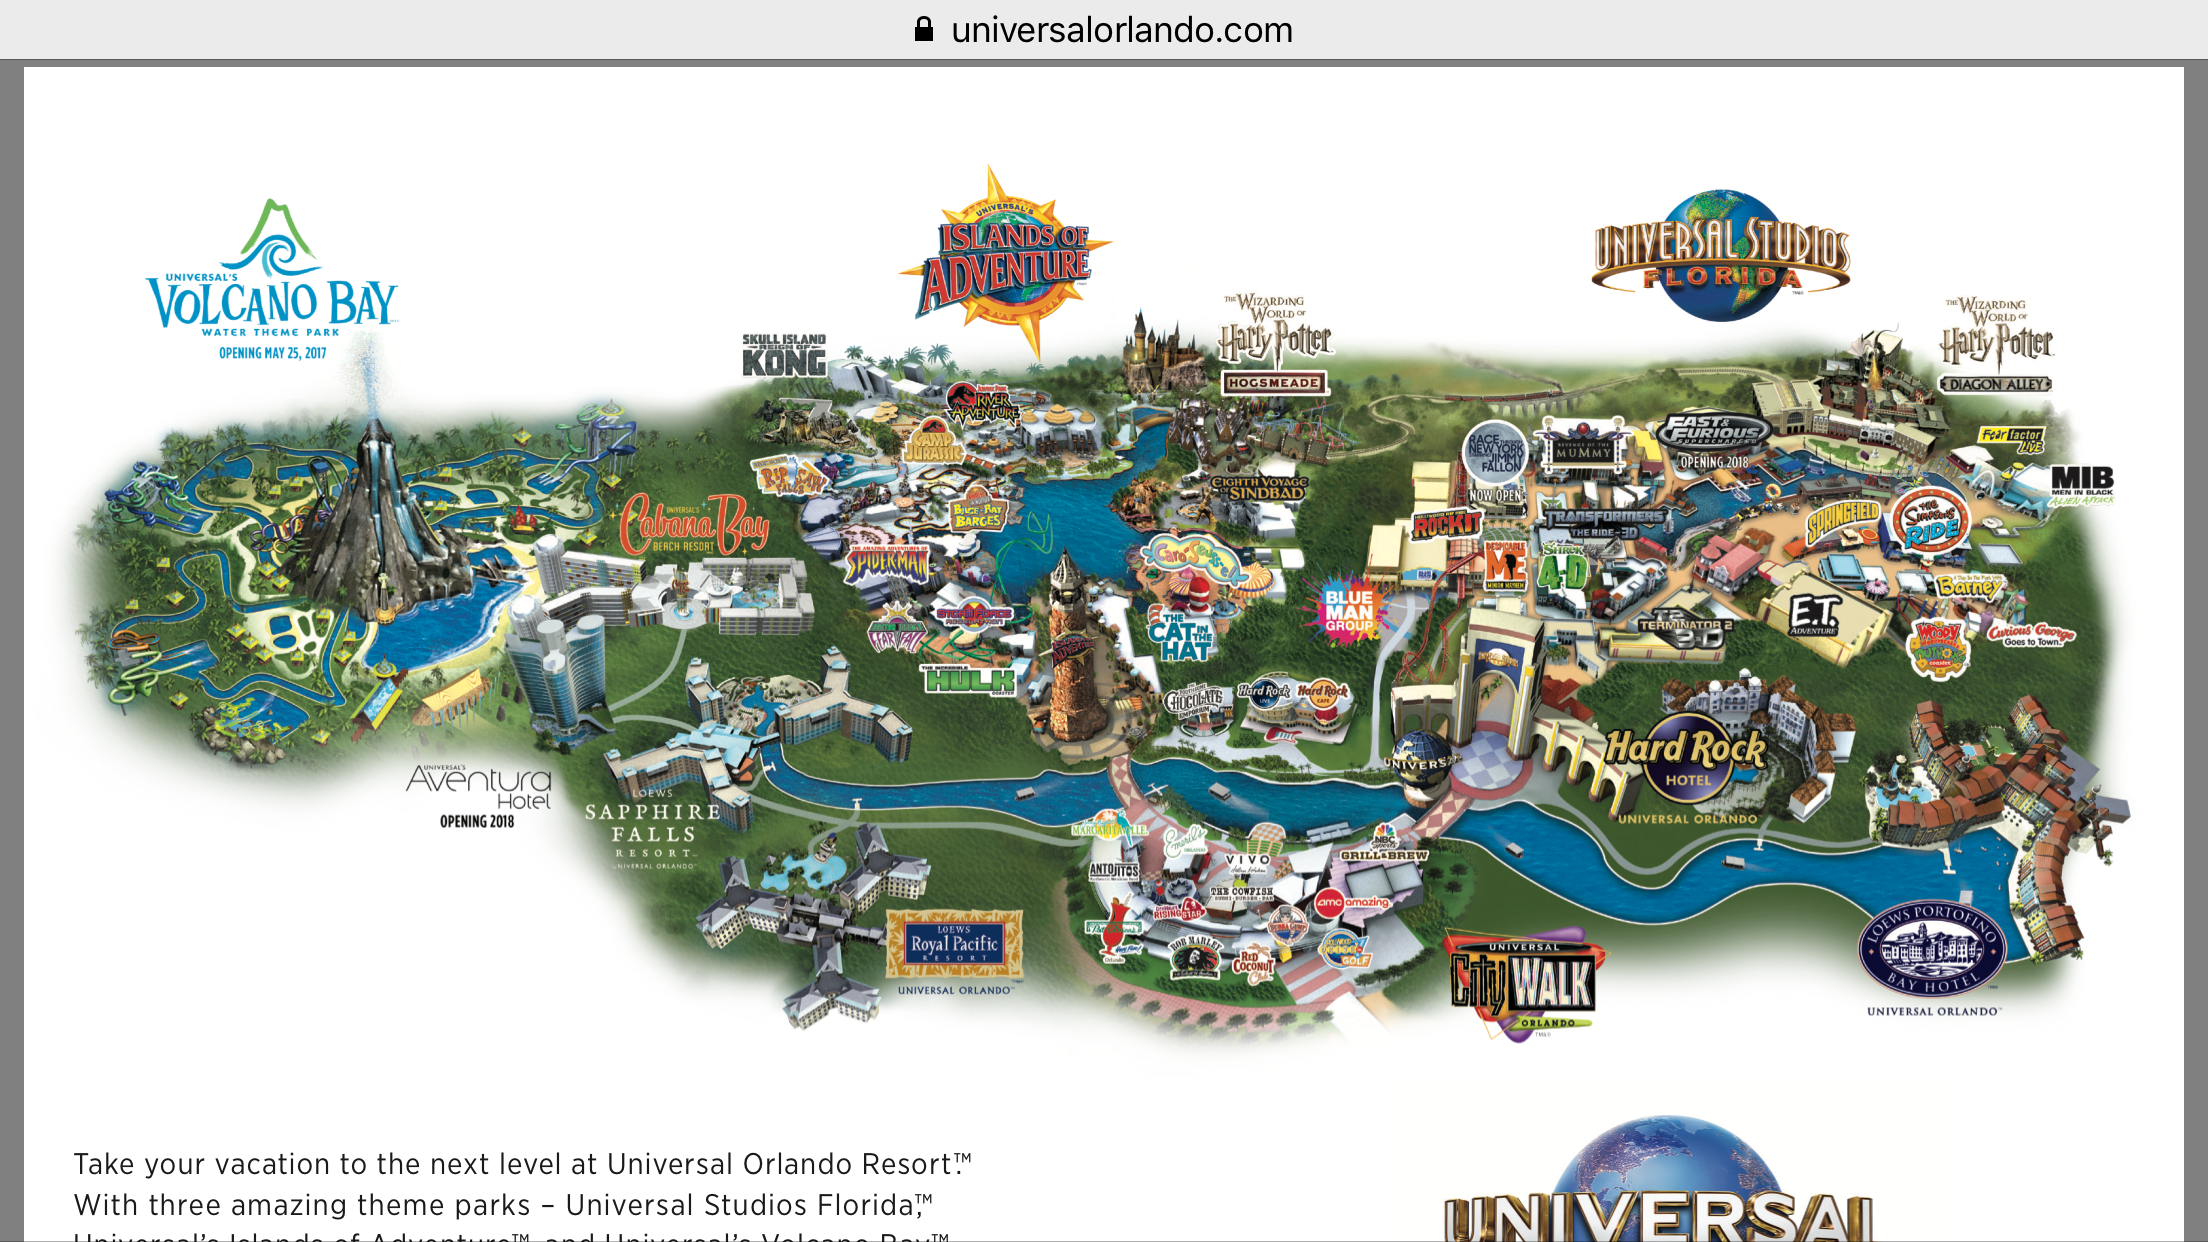 Universal Orlando Map 2015 Universal Orlando Resort Map   ThemeParkHipster